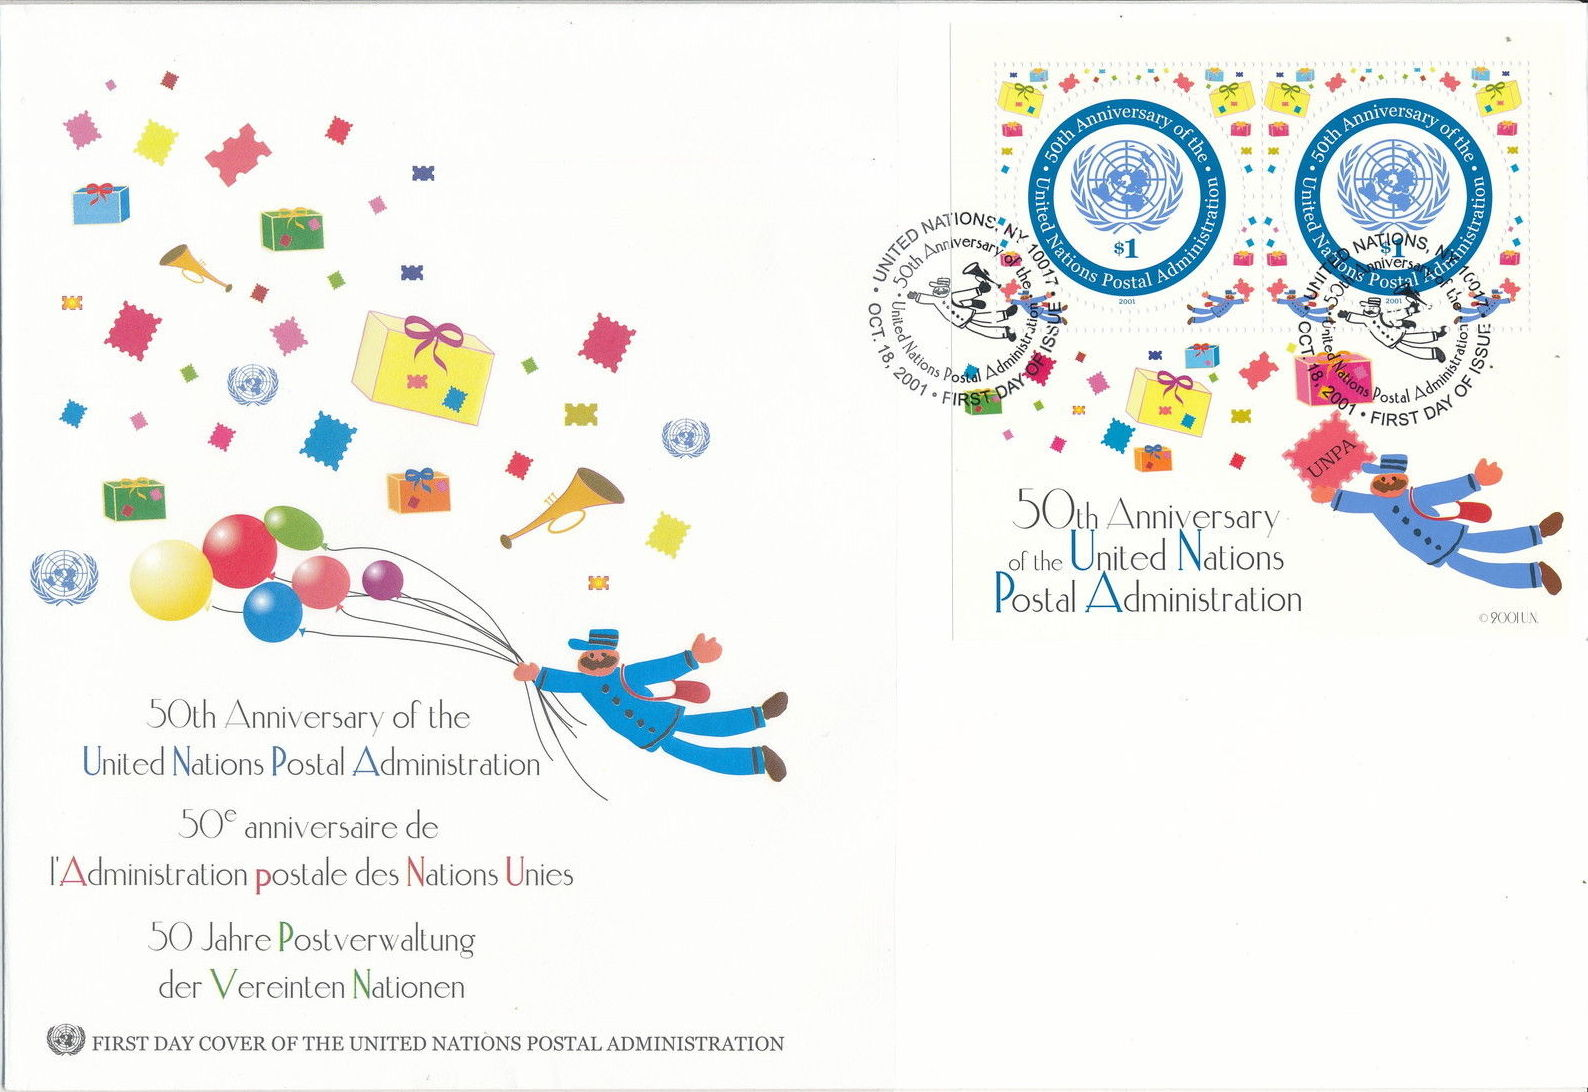 United Nations-New York 2001 50th Anniversary of United Nations Postal Administration